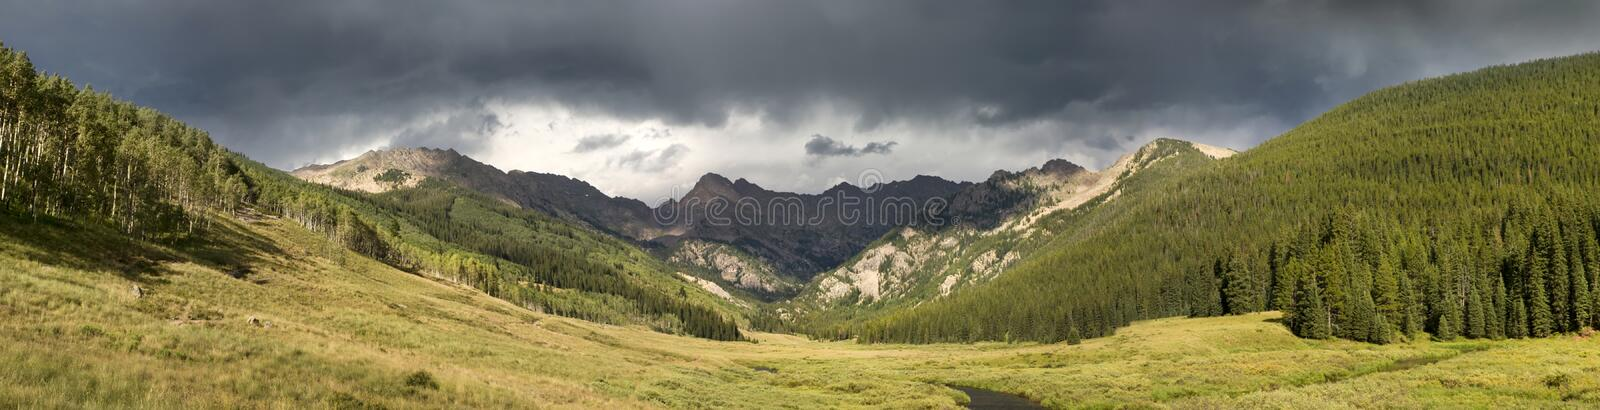 Vail Colorado Rocky Mountain Piney River Panoramic stock afbeelding